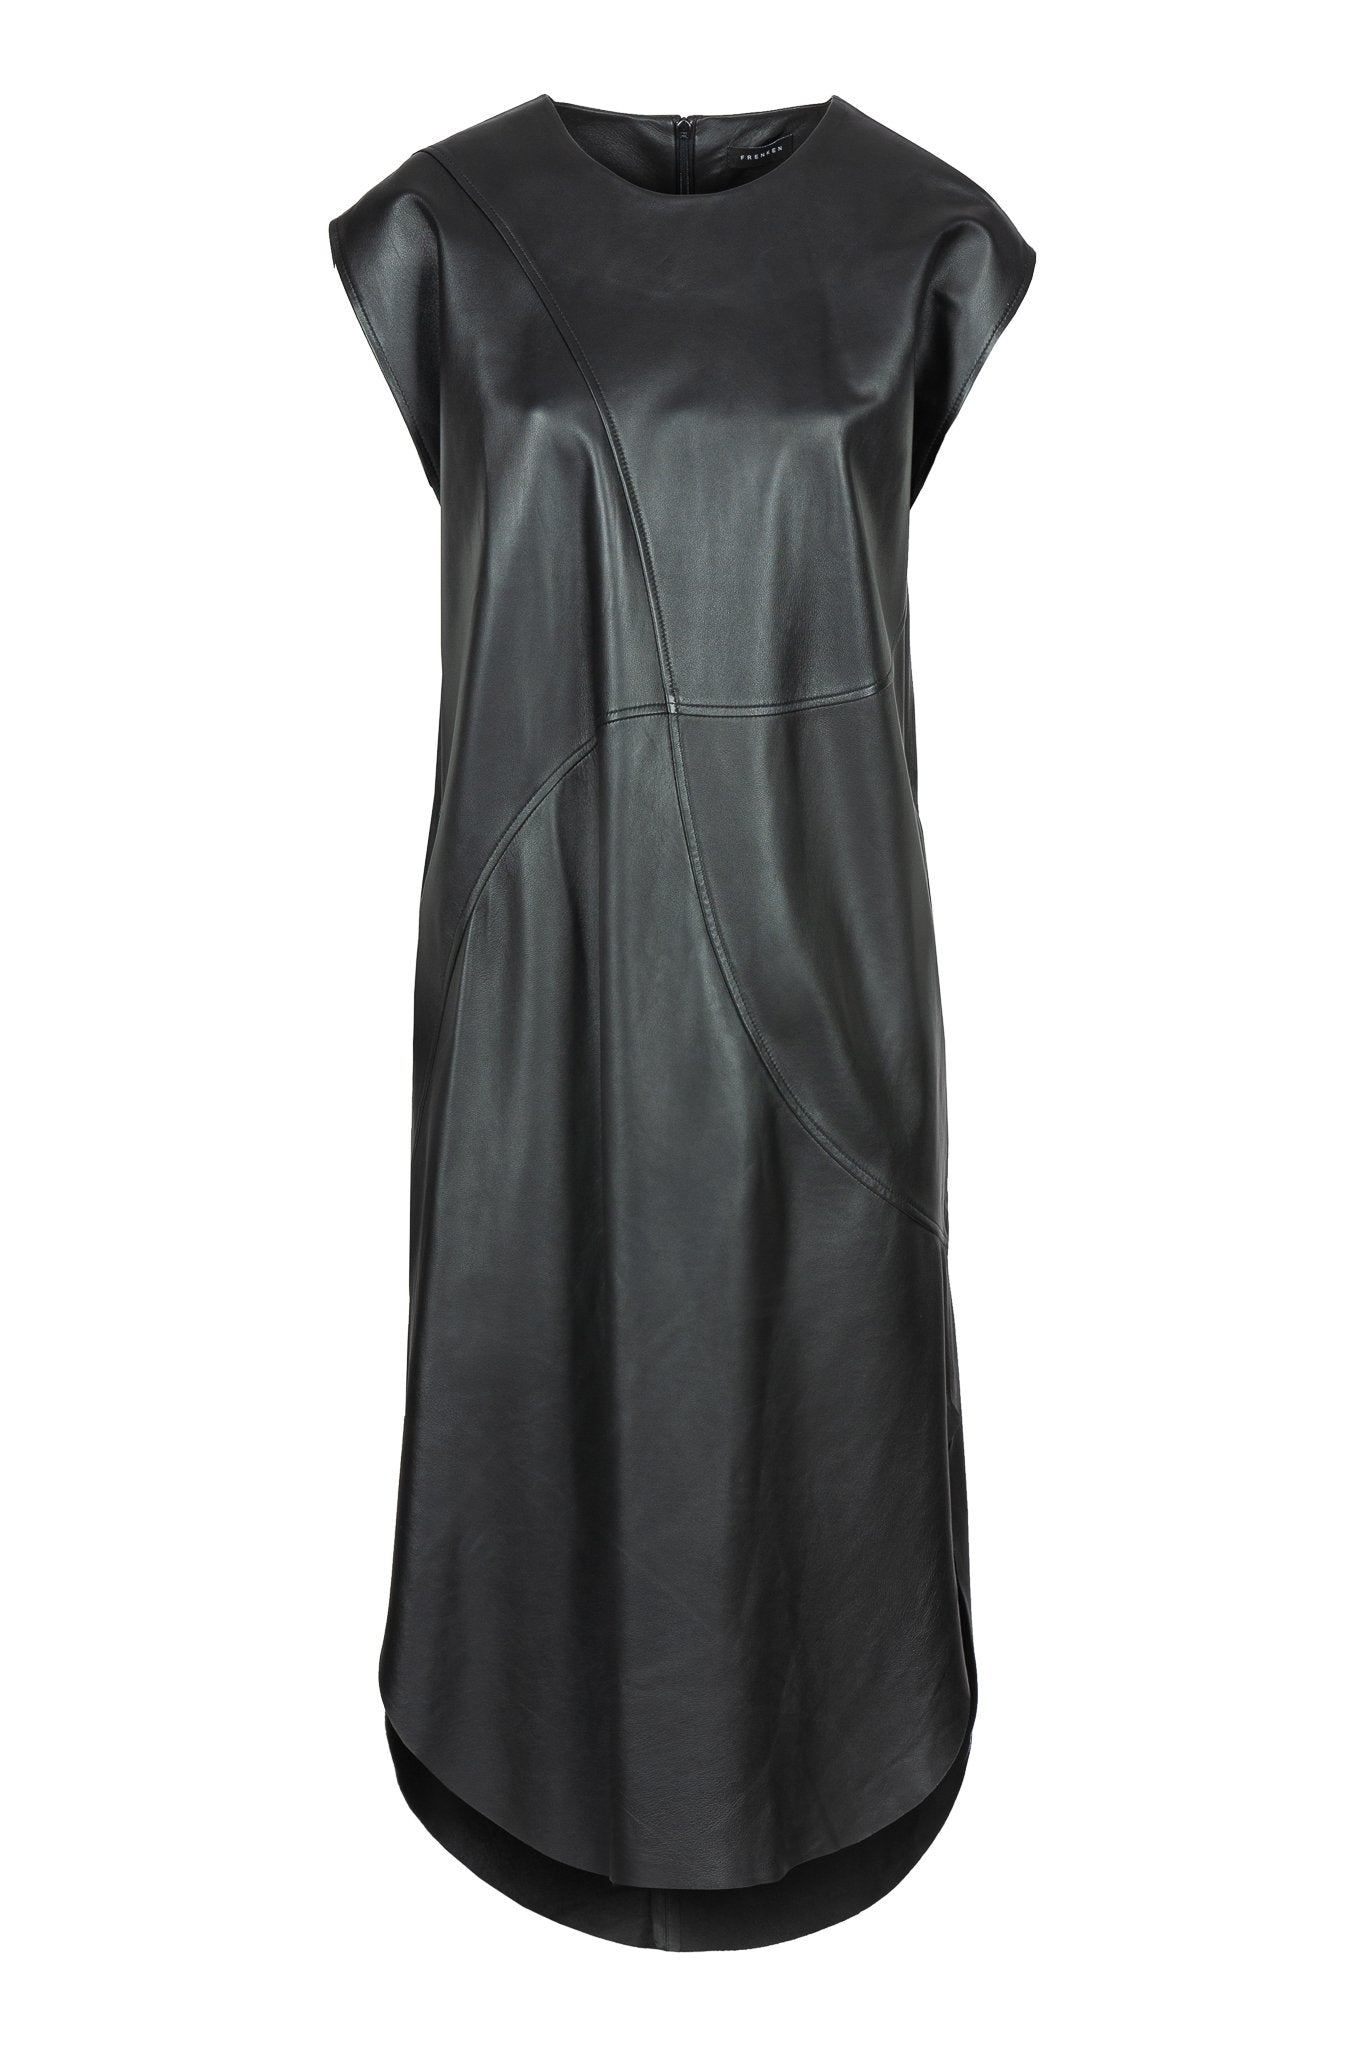 Black Dress, Arrow. FRENKEN fashion brand. Sleeveless perfect for all occasion leather dress. Designed with curved seams, elegant round hems and it has pockets. Cut from supple soft for a loose silhouette. It feels luxurious to wear. Composition, Fabric: 100% Leather